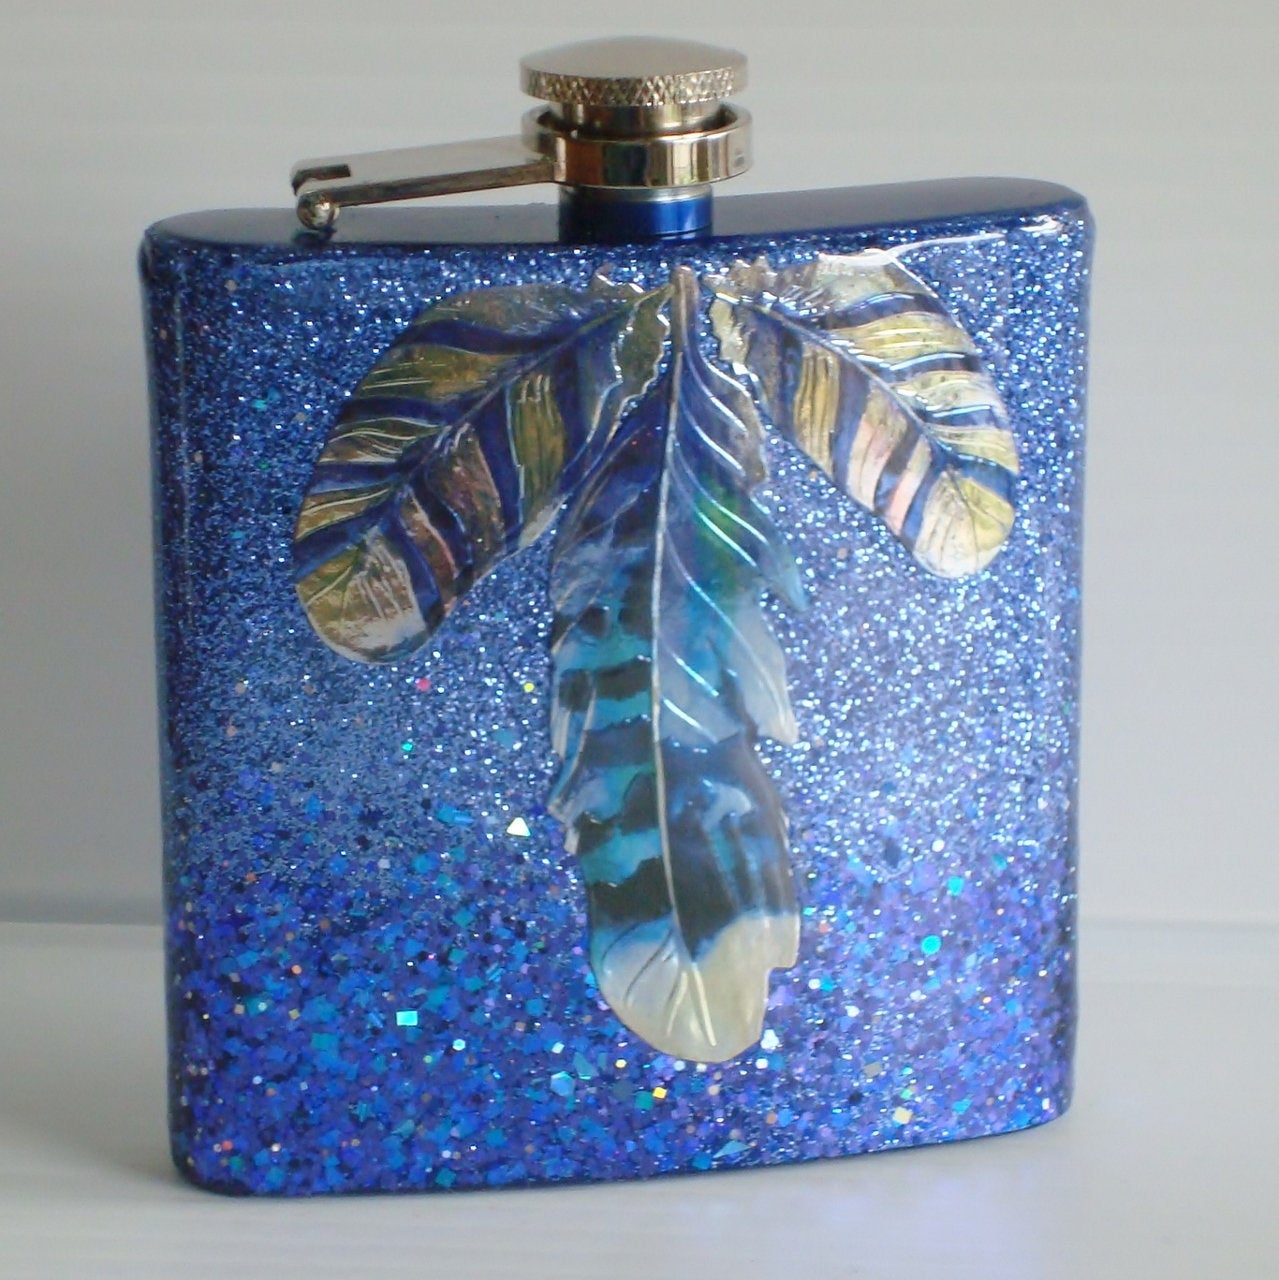 RTS Blue and Silver Glitter Feather Design 6 oz Flask Hip Flask Gift for Him Camping Gift